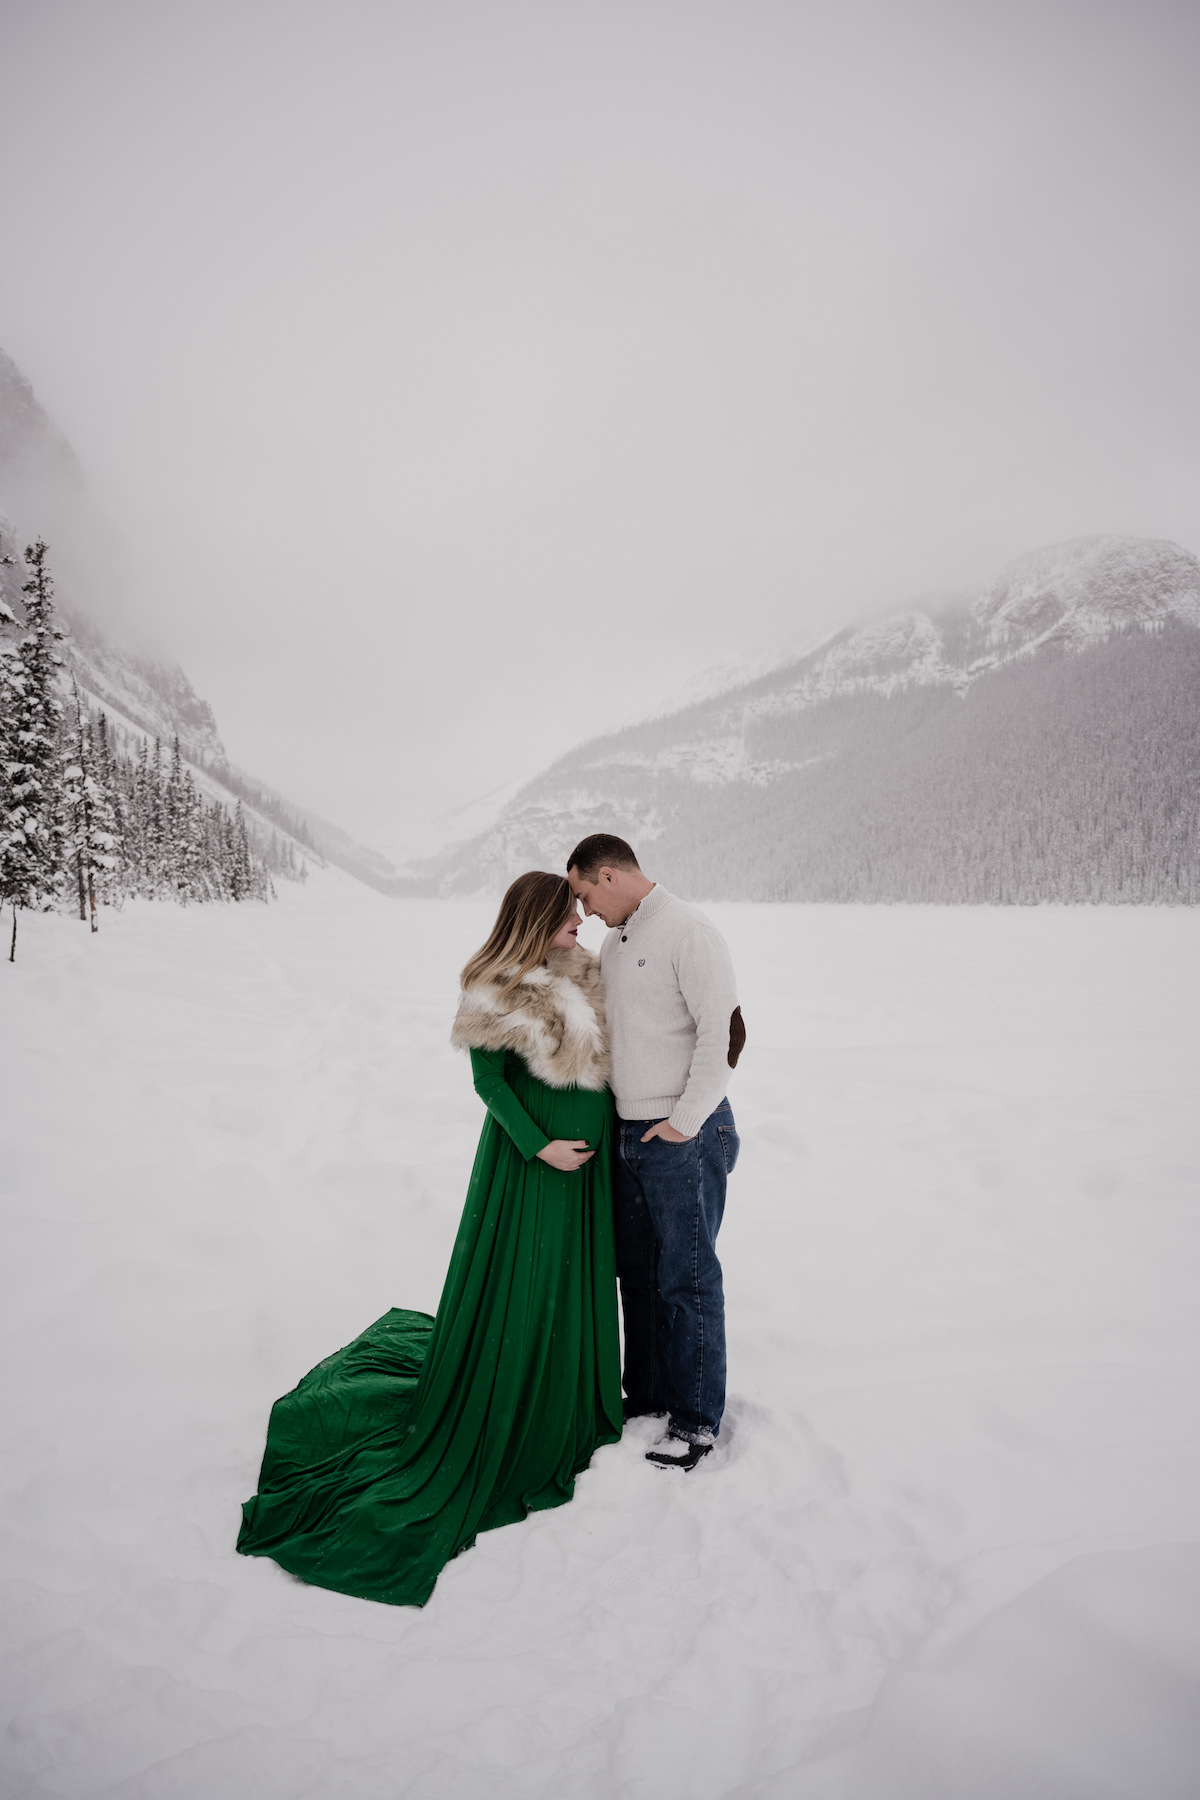 A pregnant woman in a long green dress and a man in a white sweater standing together holding each other in a snowy landscape in Lake Louise, Canada.